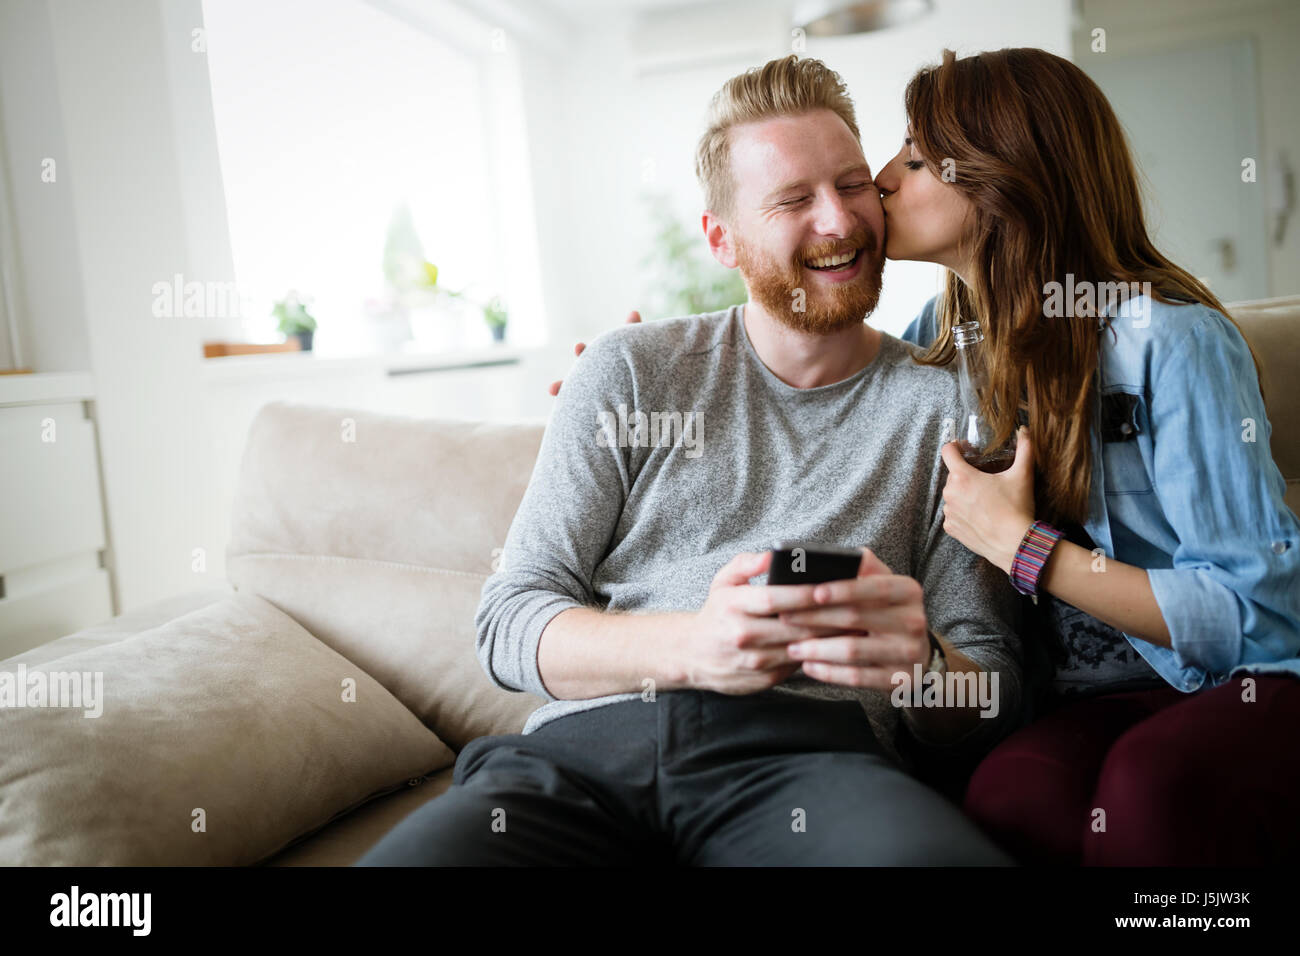 Romantic young couple expressing their love by kissing - Stock Image